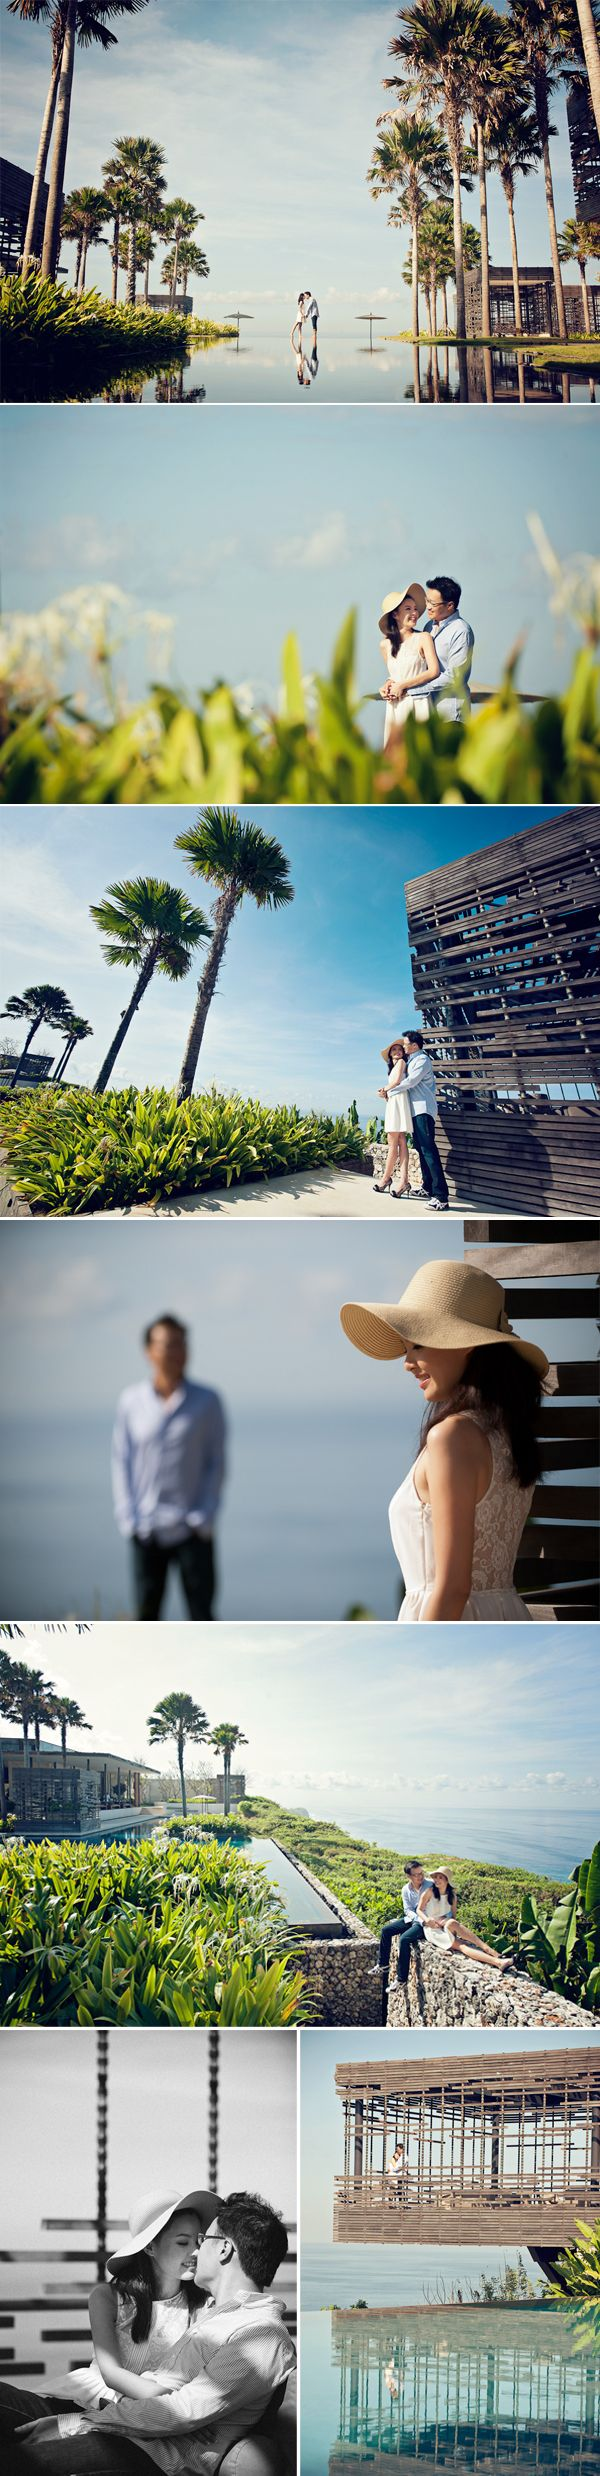 Bali Pre-Wedding Session from Daren Chong